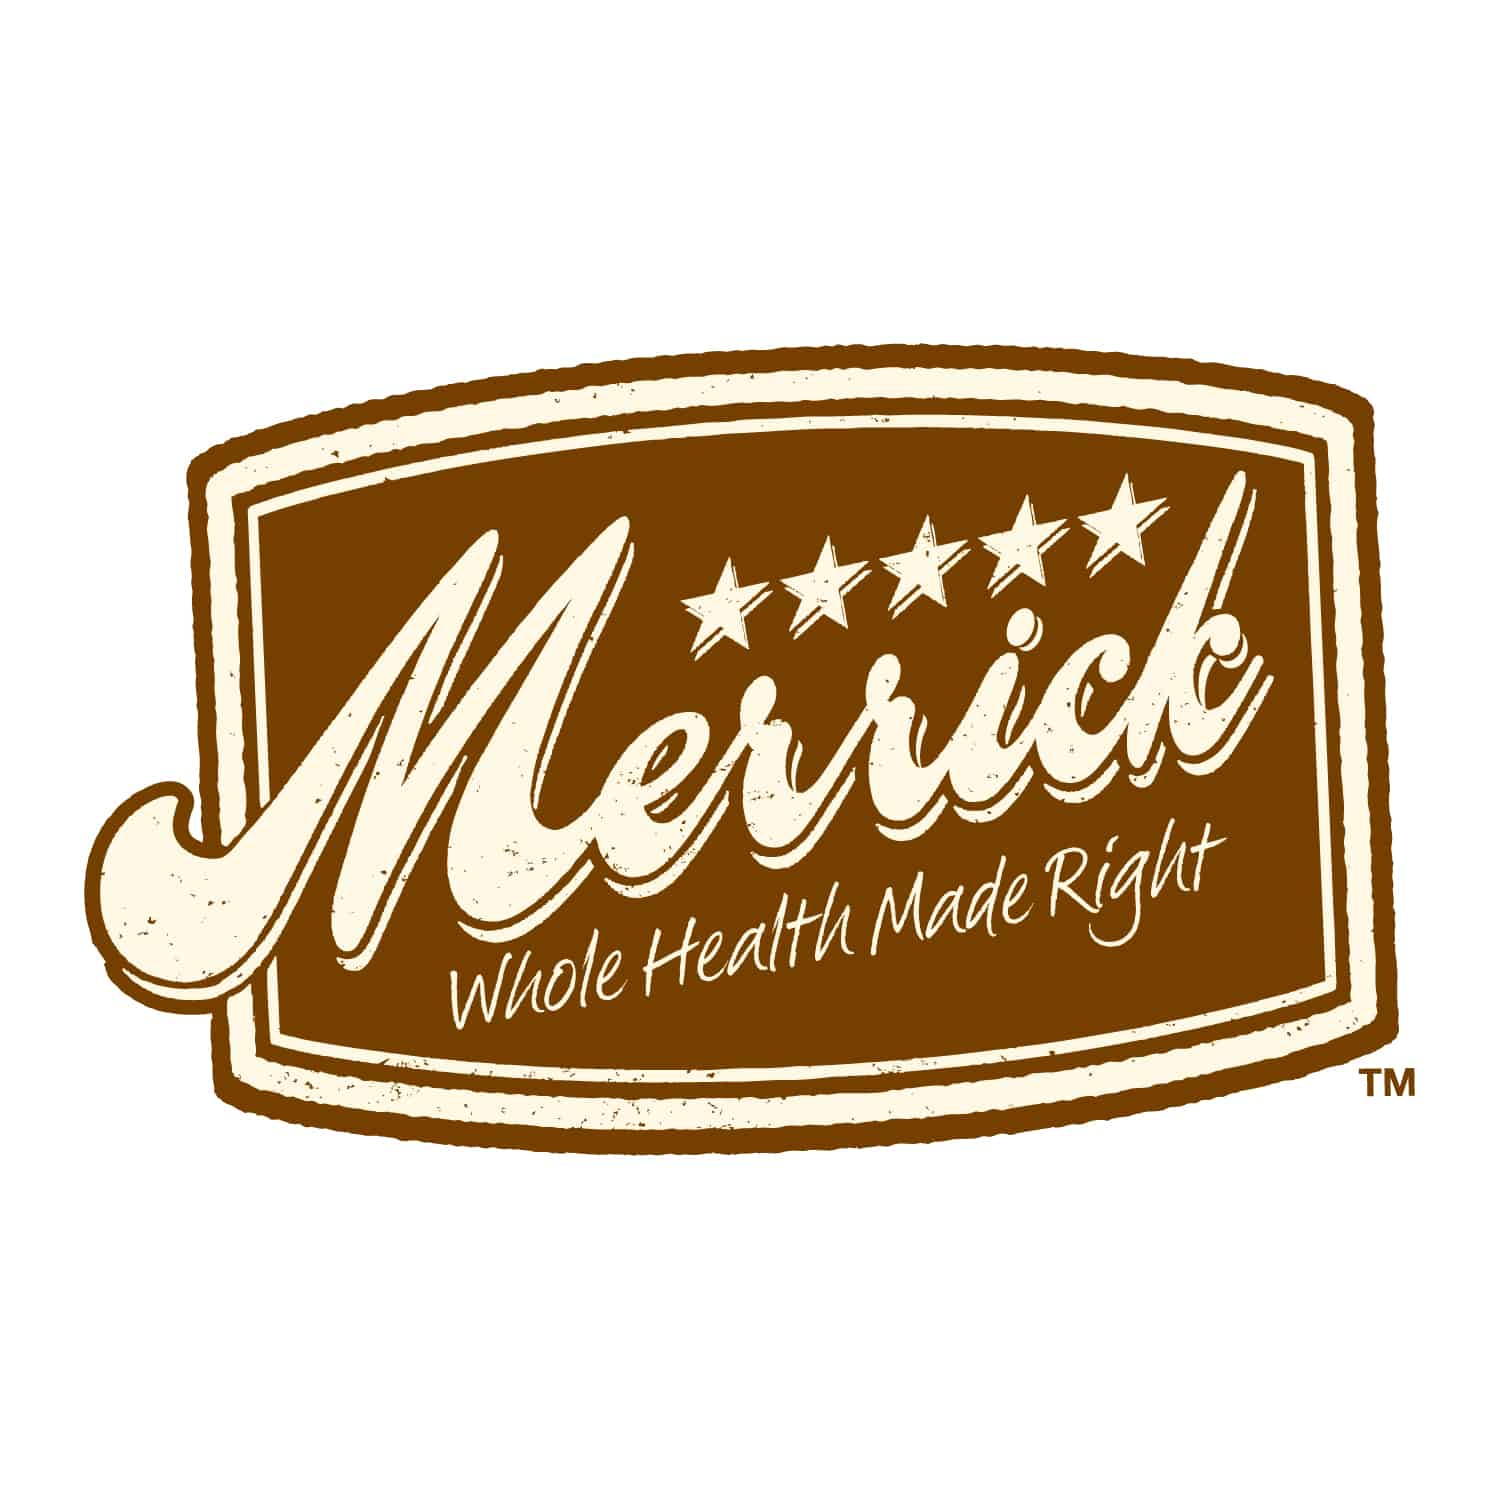 Taste Of The Wild Puppy Food >> Merrick Dog Food Reviews 🦴 Puppy Food Recalls 2019 ...